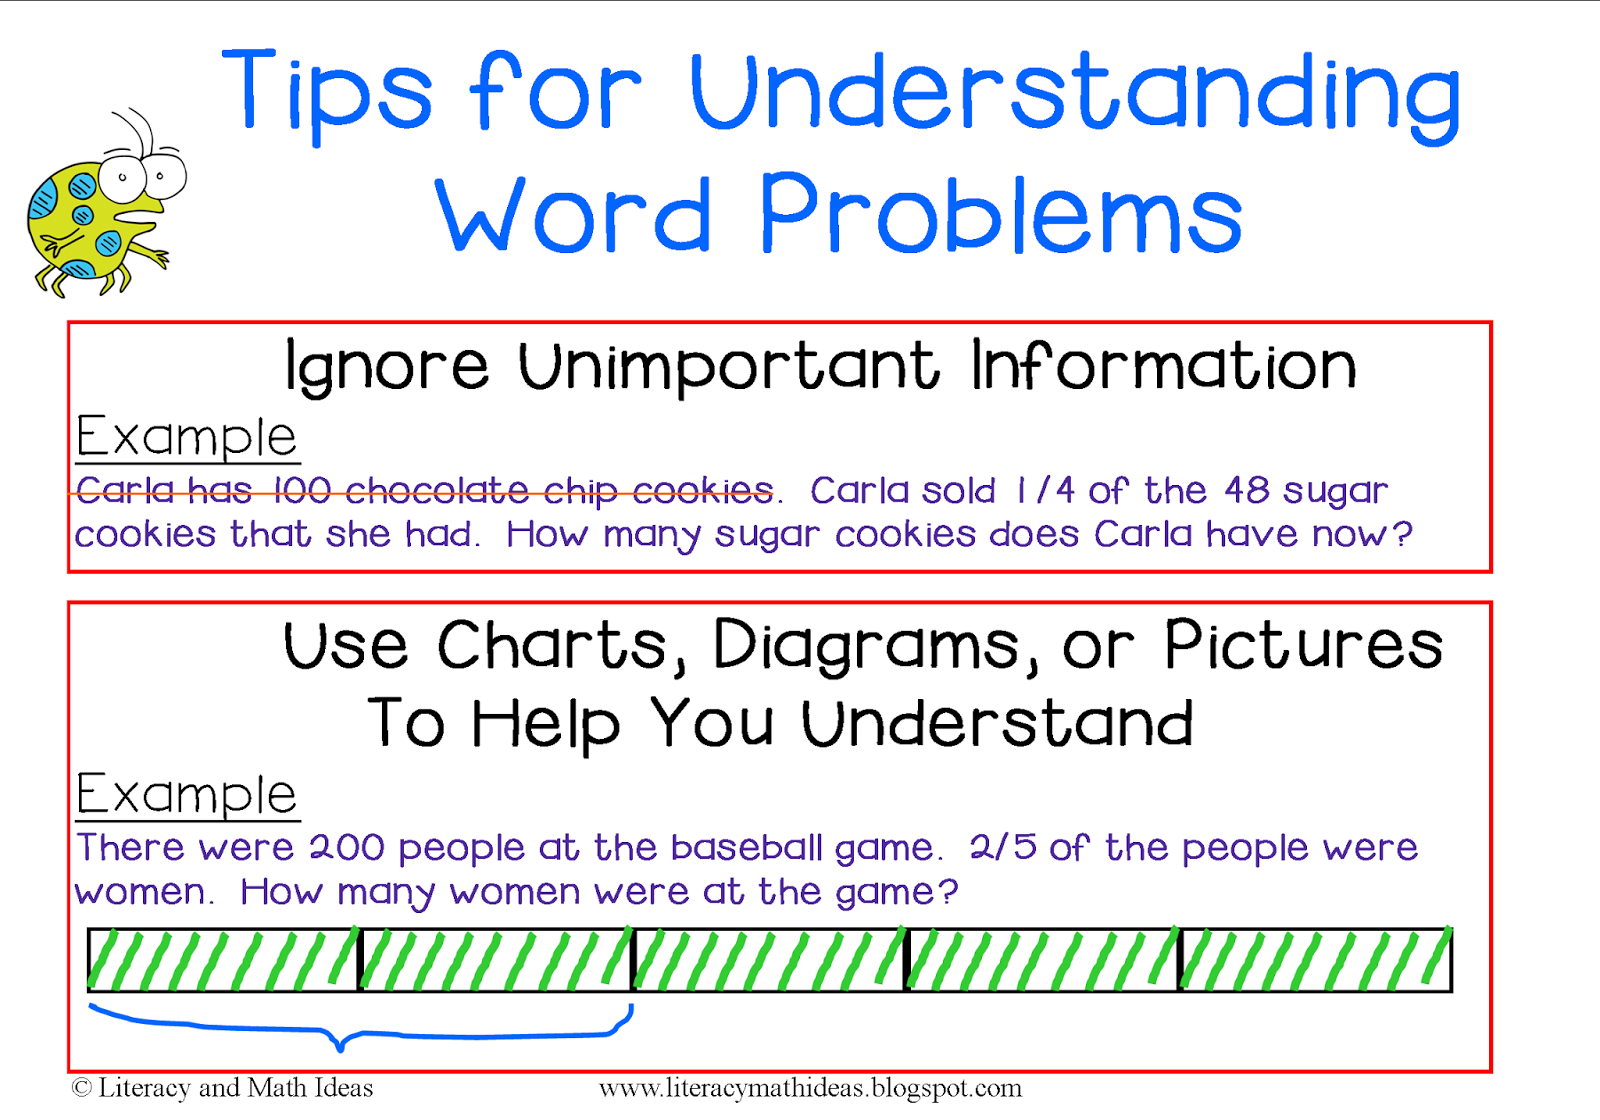 Integrating Reading With Math The Blog Post Has Helpful